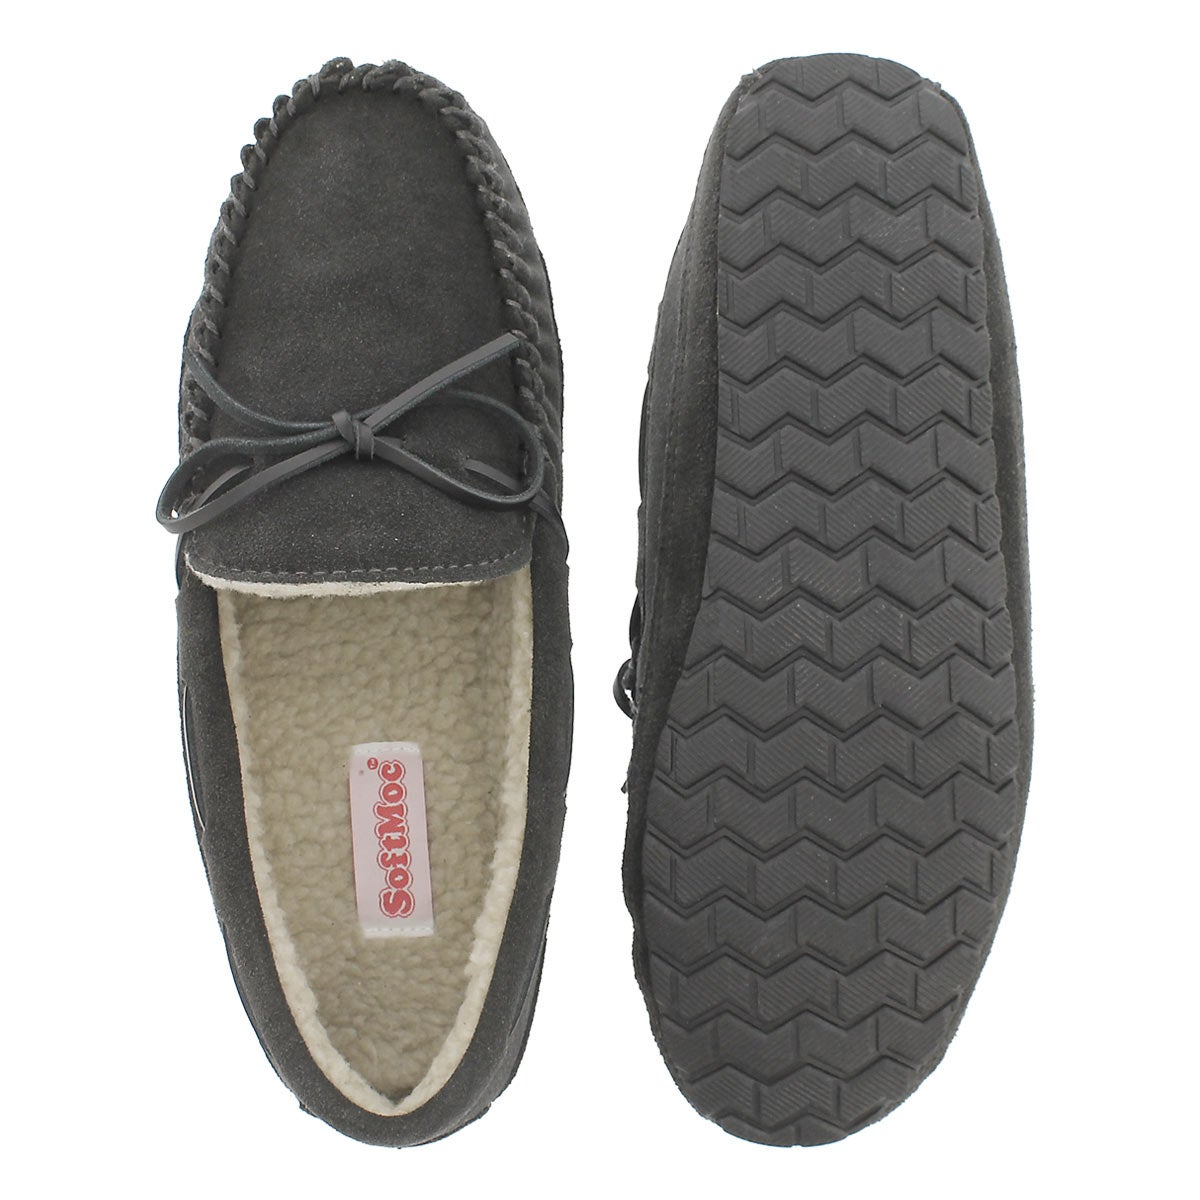 Mns Preston charcoal mem. foam moccasin